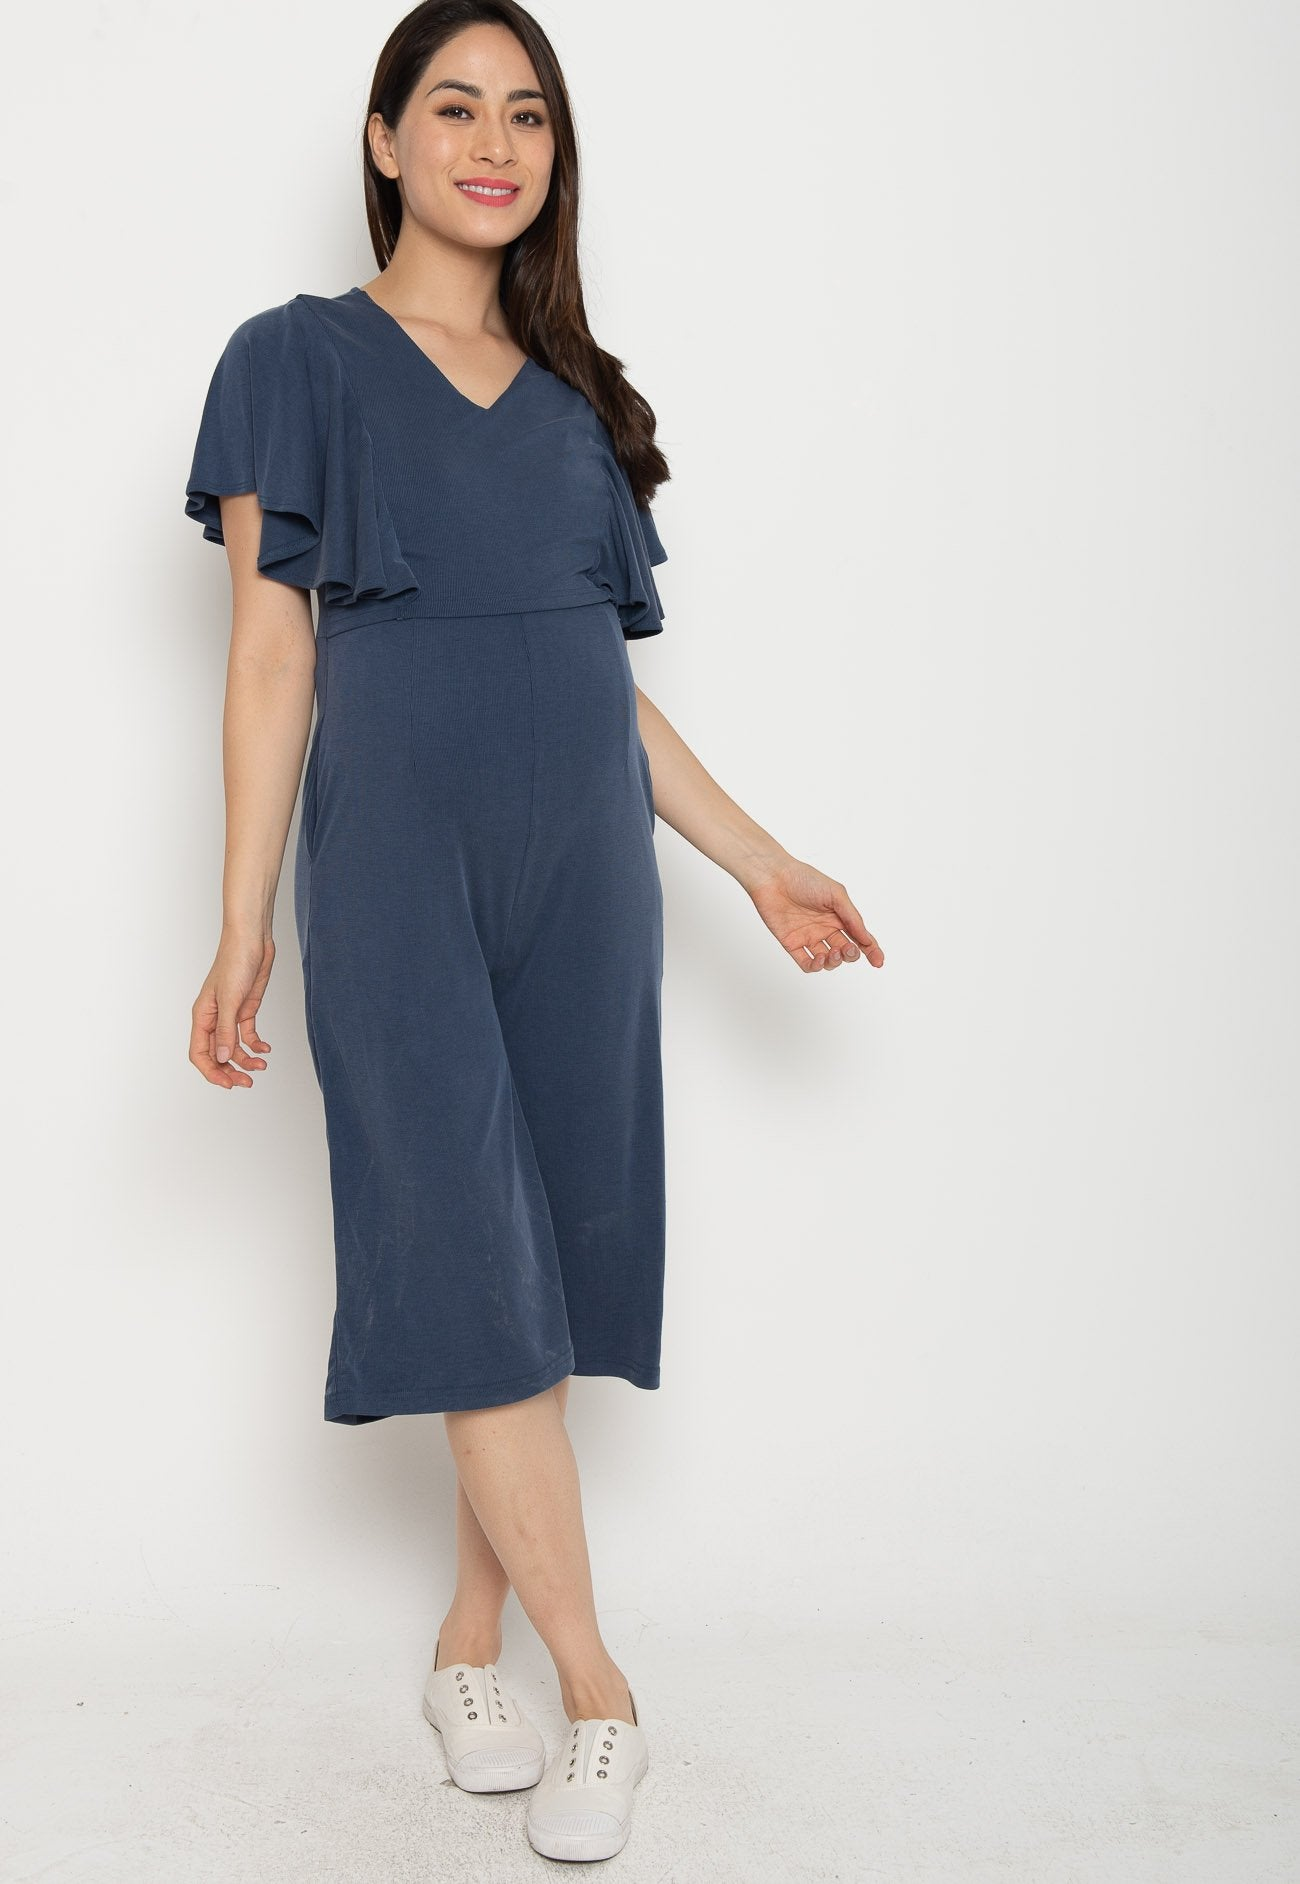 Oviya Butterfly Sleeves Nursing Jumpsuit in Blue  by Jump Eat Cry - Maternity and nursing wear